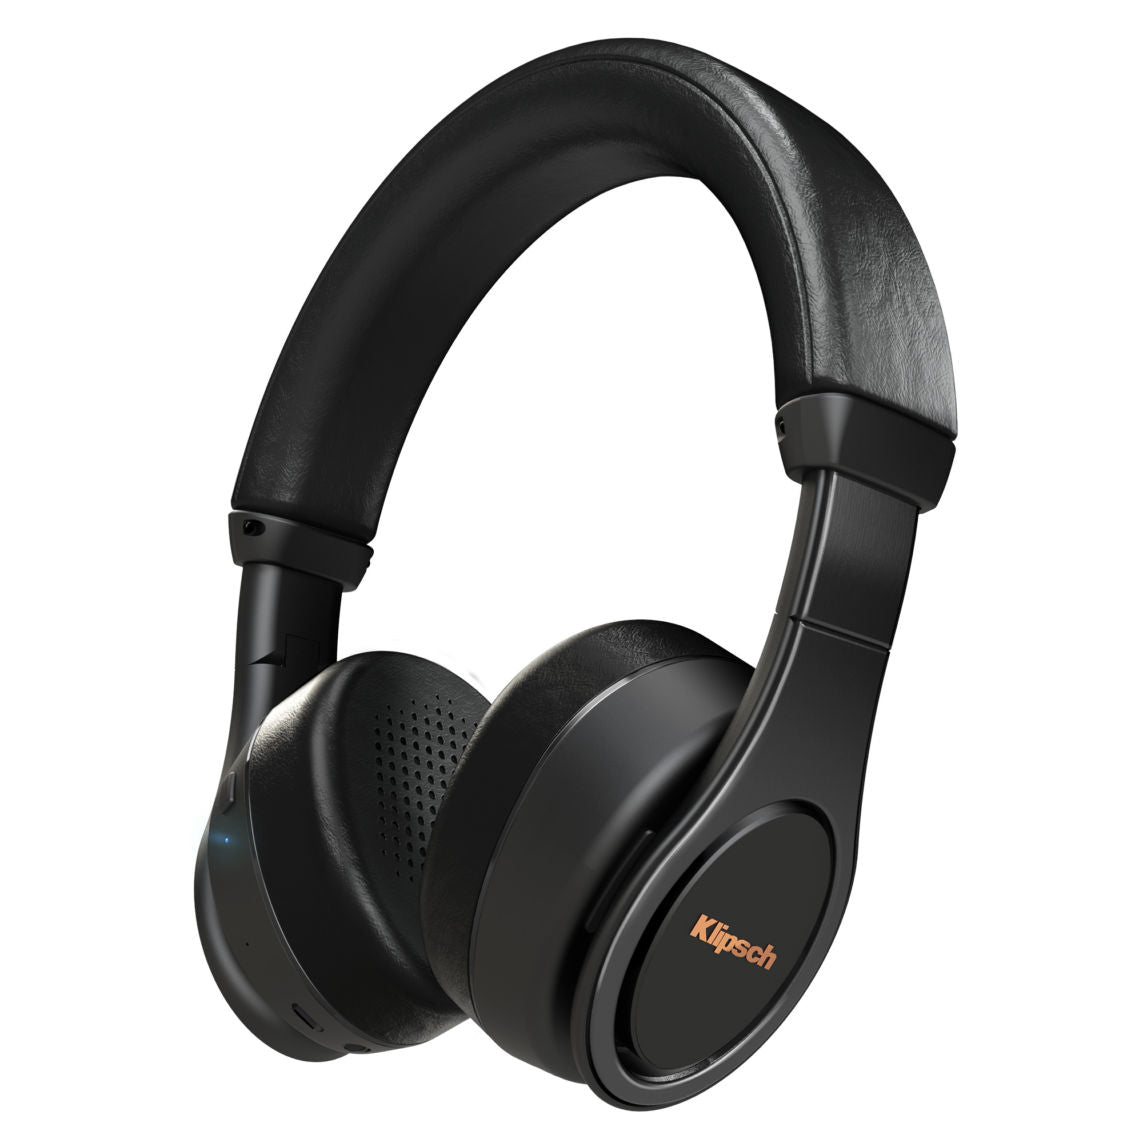 REFERENCE ON-EAR BLUETOOTH HEADPHONES (EACH) - Vinyl Sound